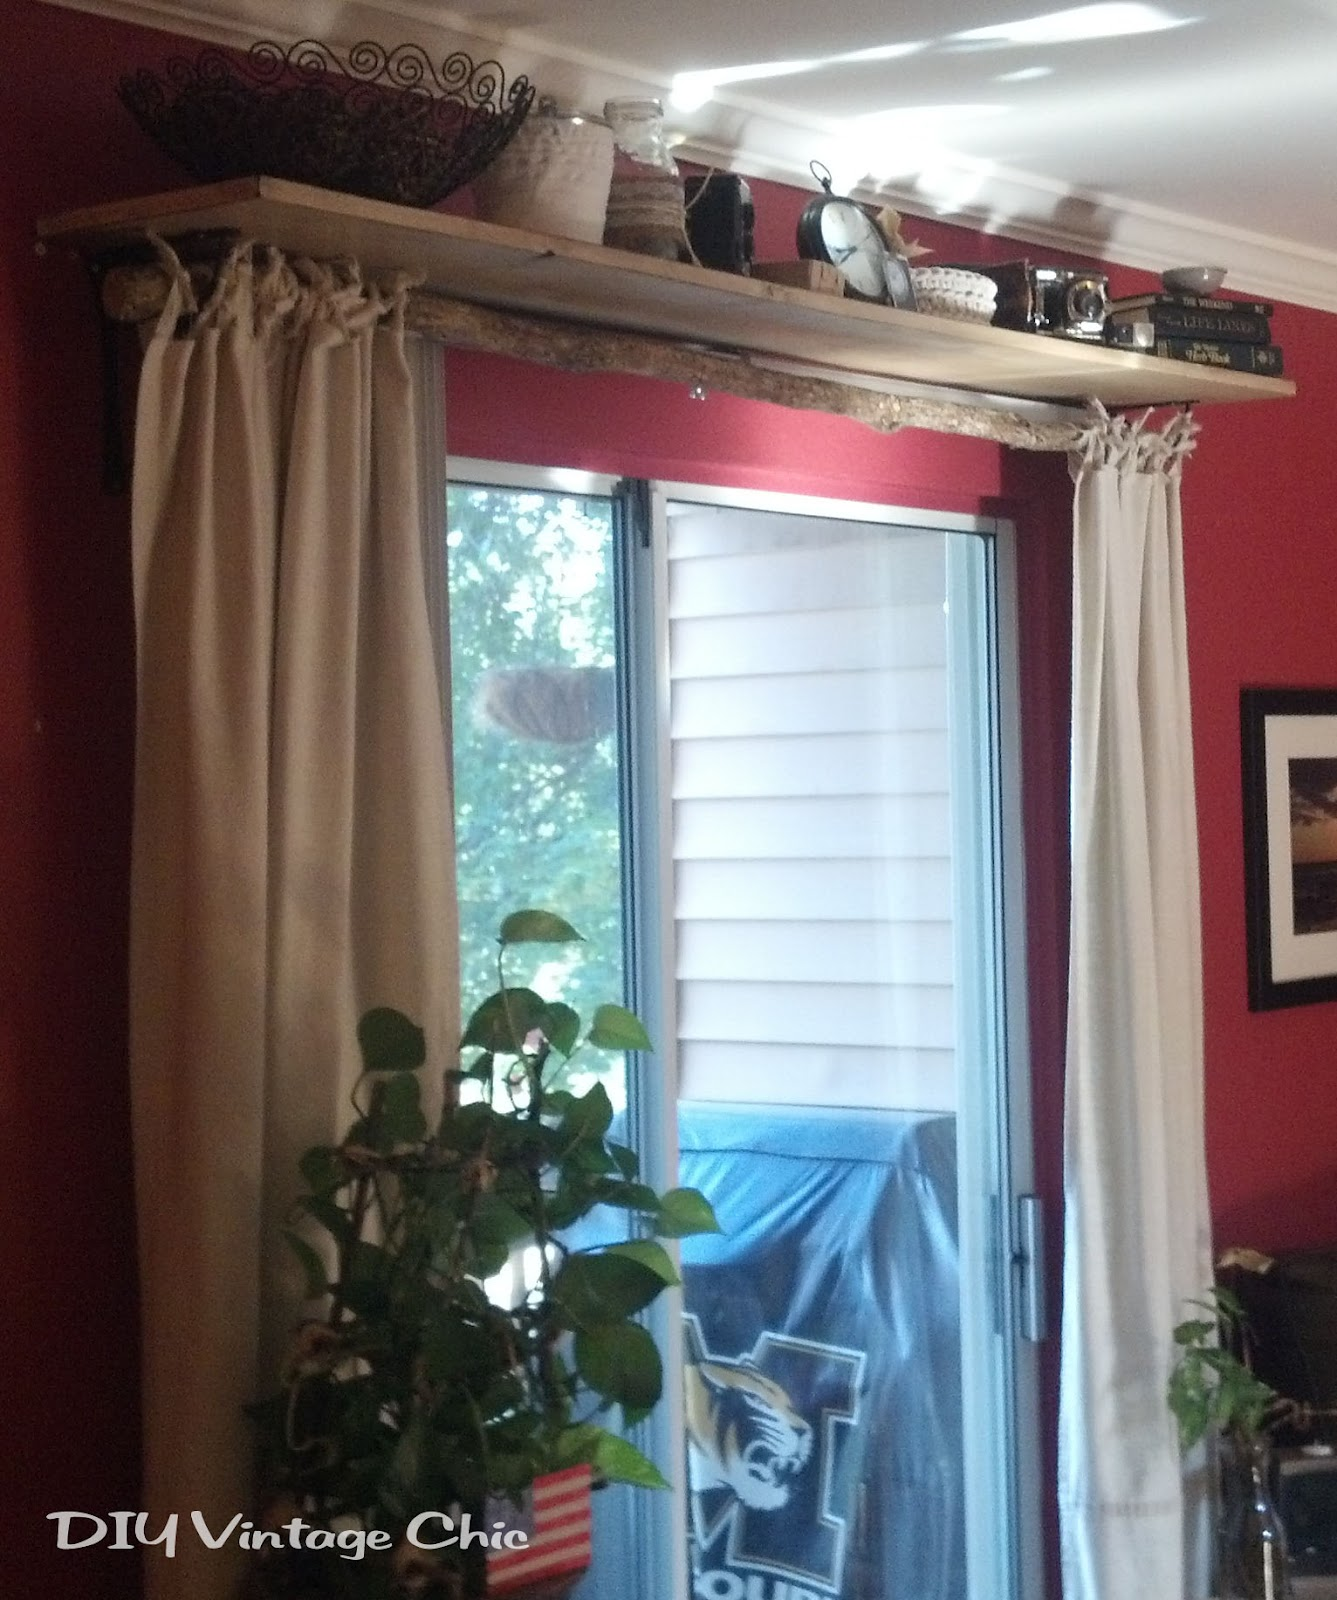 Learn How To Make No Sew Curtains And A Cute Display Shelf With Curtain Rod